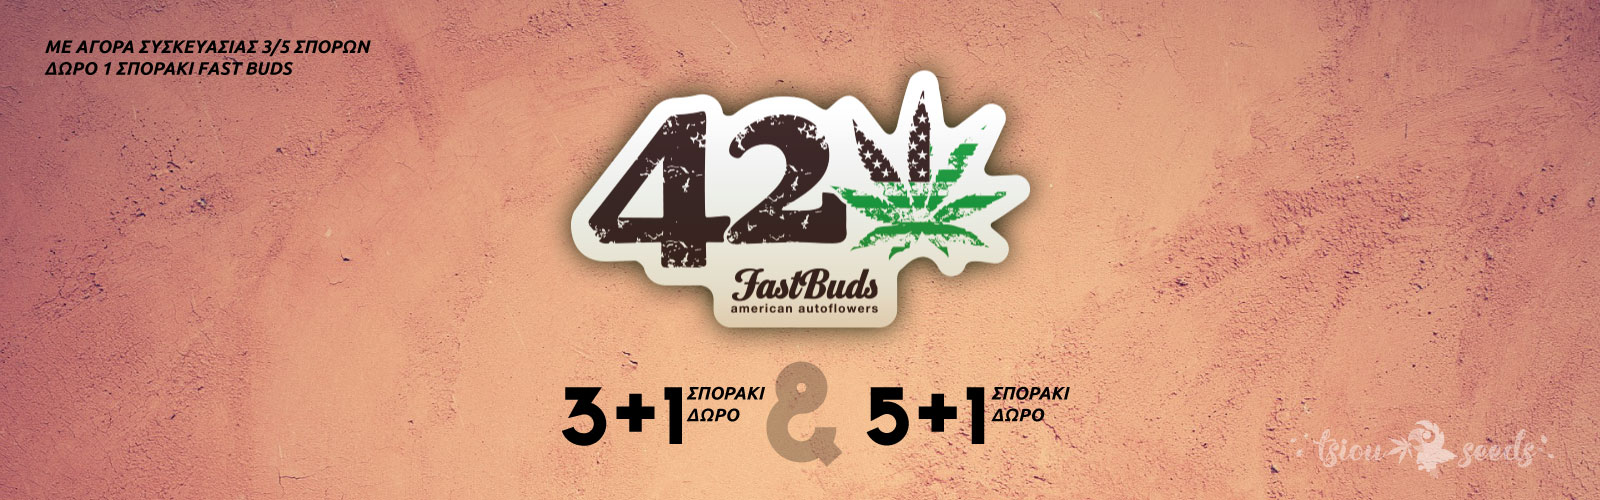 Fast-Buds-Offer